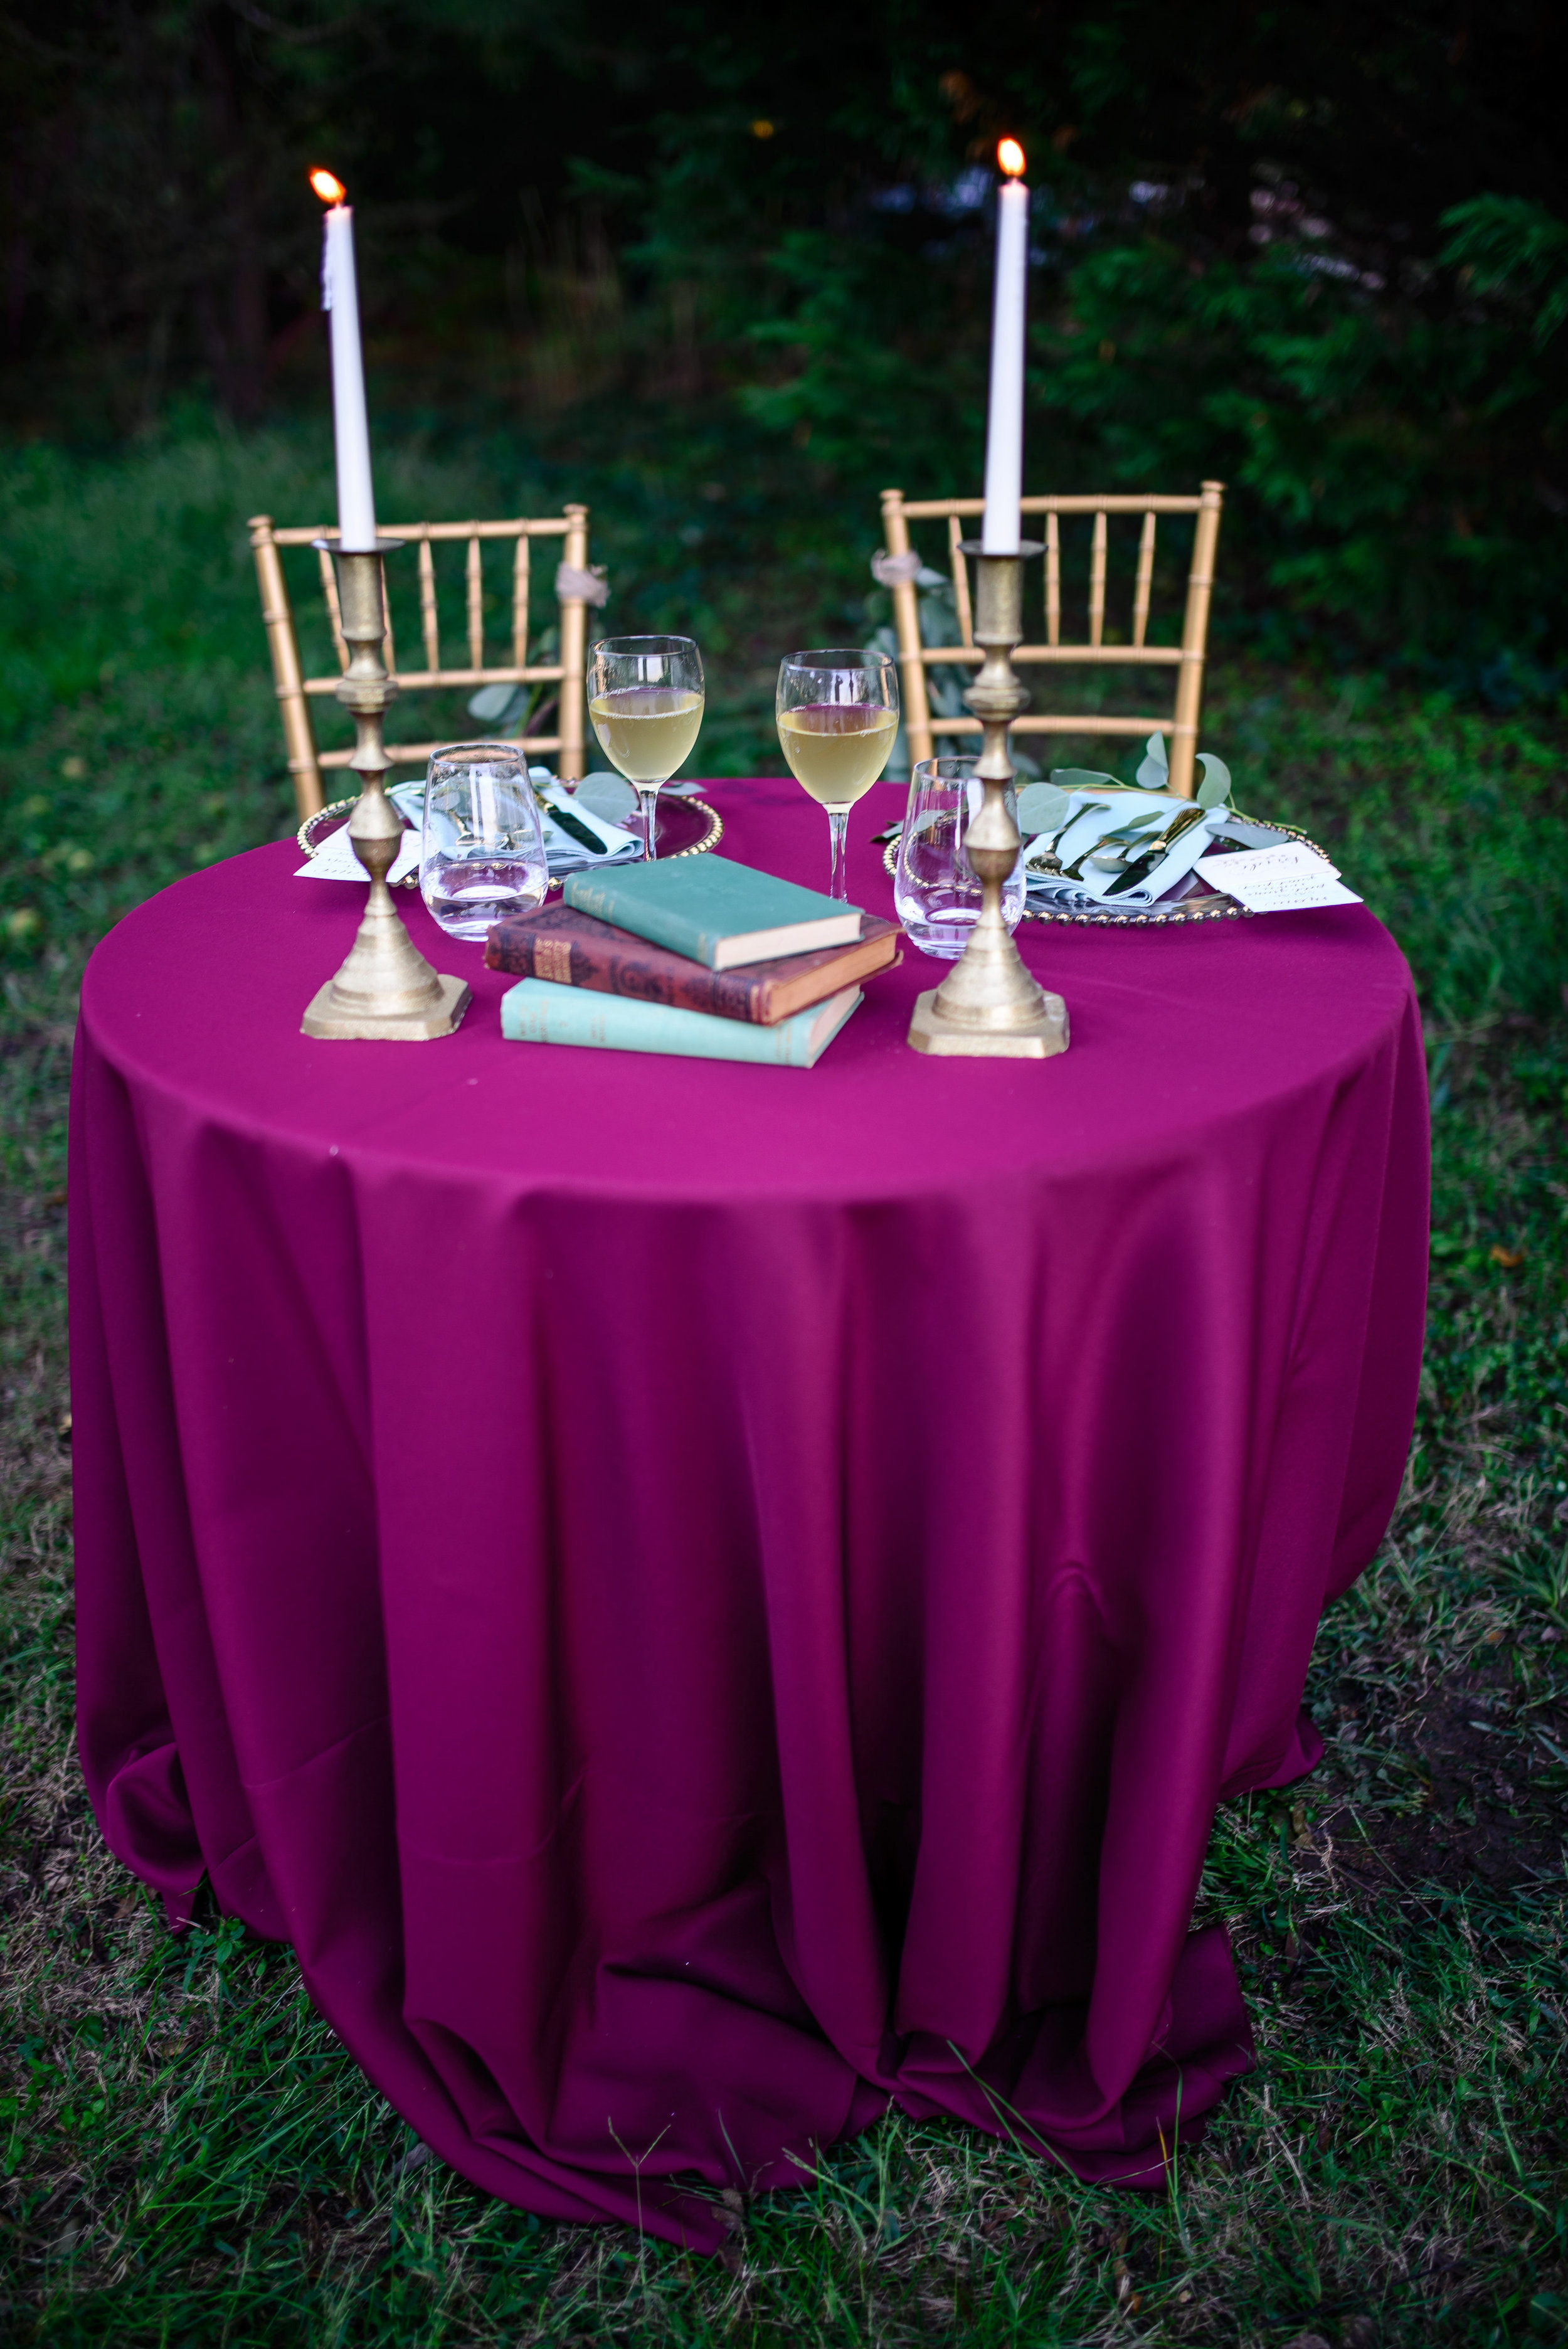 Emily Marie Photography with Courtney Inghram Event Literary Inspired Shoot at the Williamsburg Winery as seen on Fab You Bliss